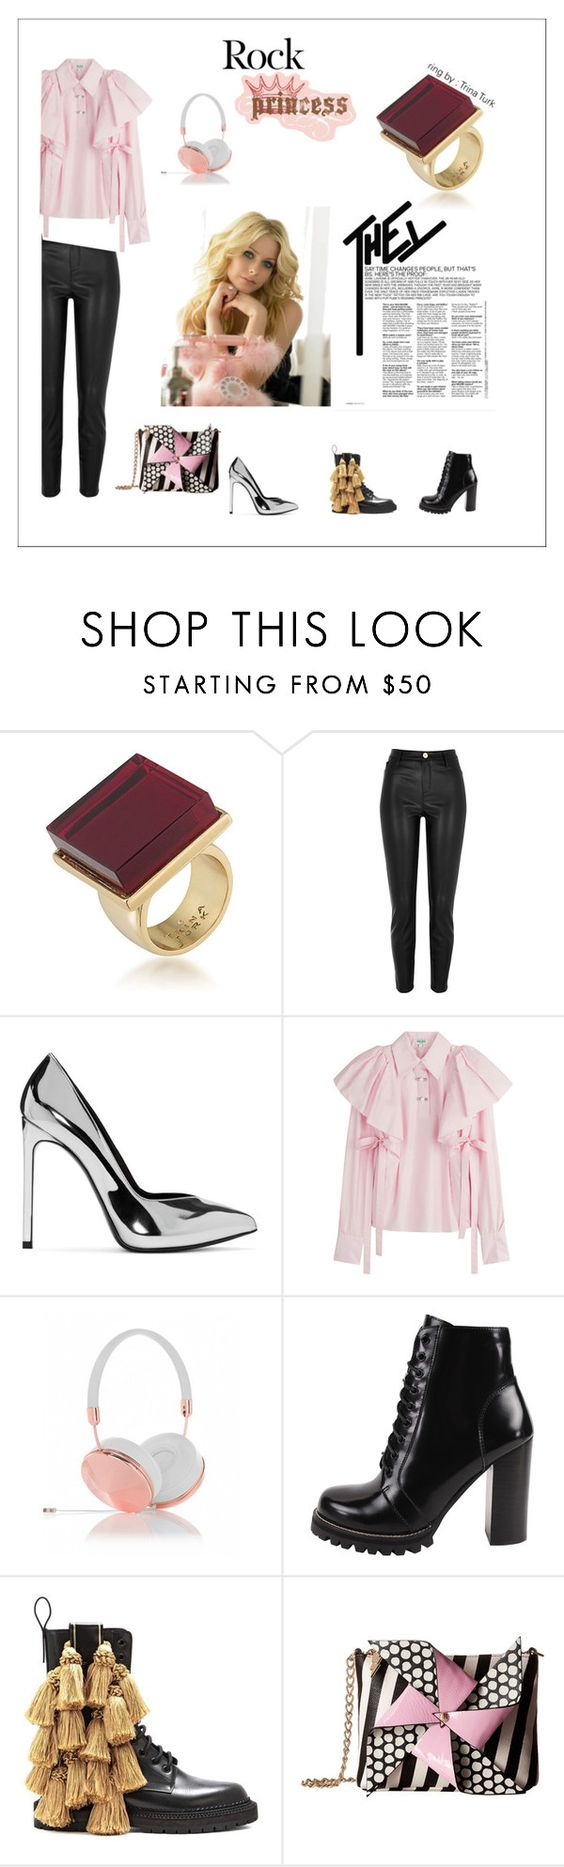 """""""Inspiration : for Avril Lavigne"""" by thisismedika ❤ liked on Polyvore featuring Trina Turk, River Island, Yves Saint Laurent, Kenzo, Frends, Jeffrey Campbell, Burberry and Betsey Johnson"""